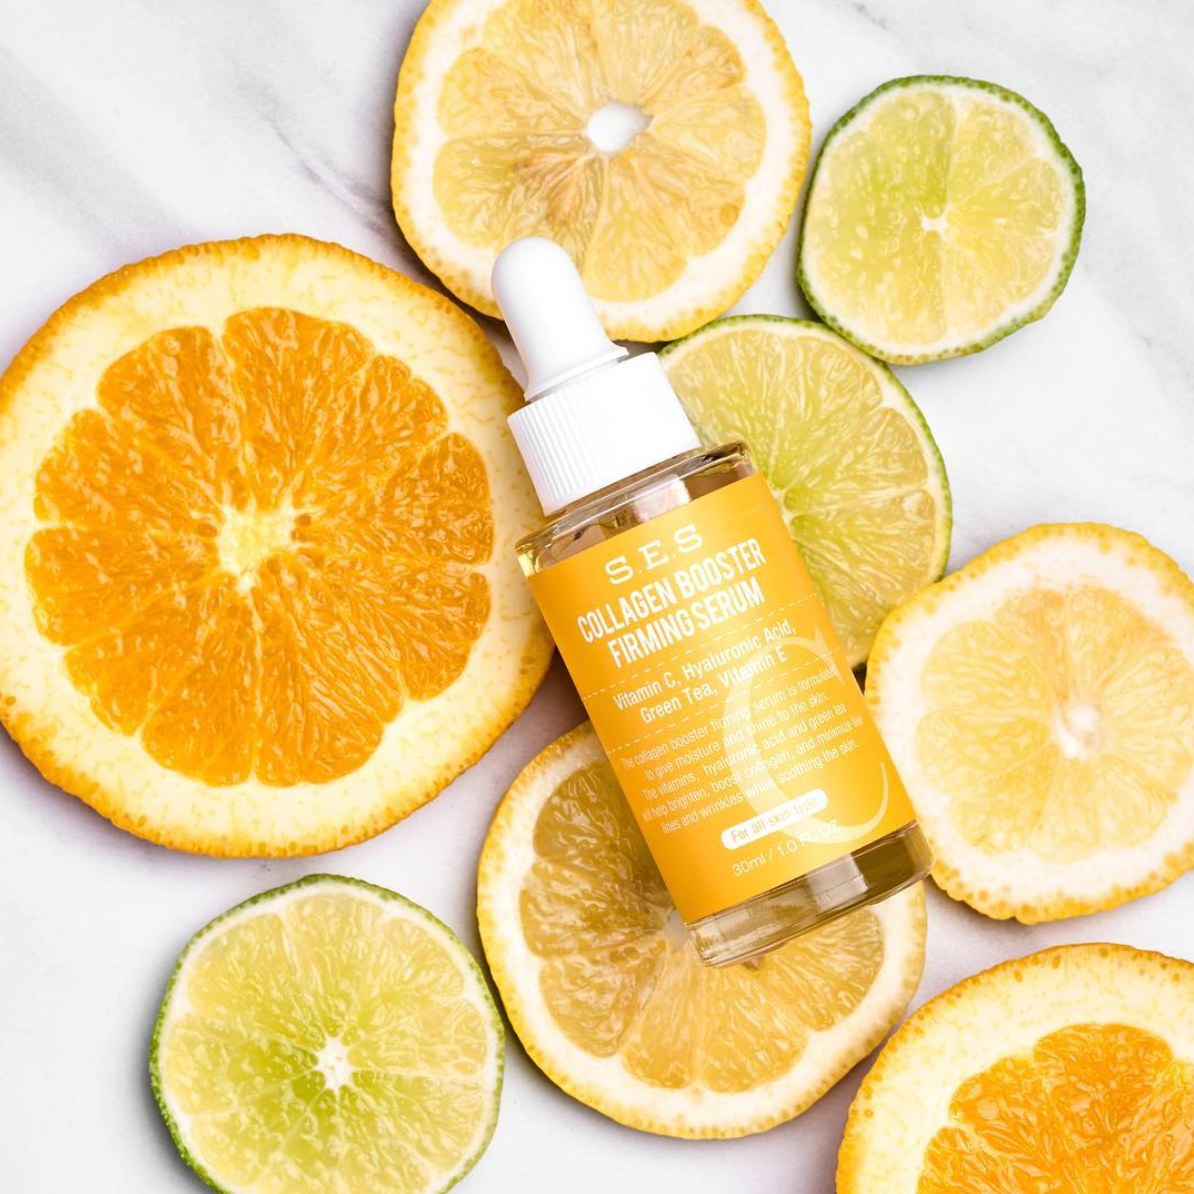 S.E.S. Collagen Booster Firming Serum against a background of citrus fruits